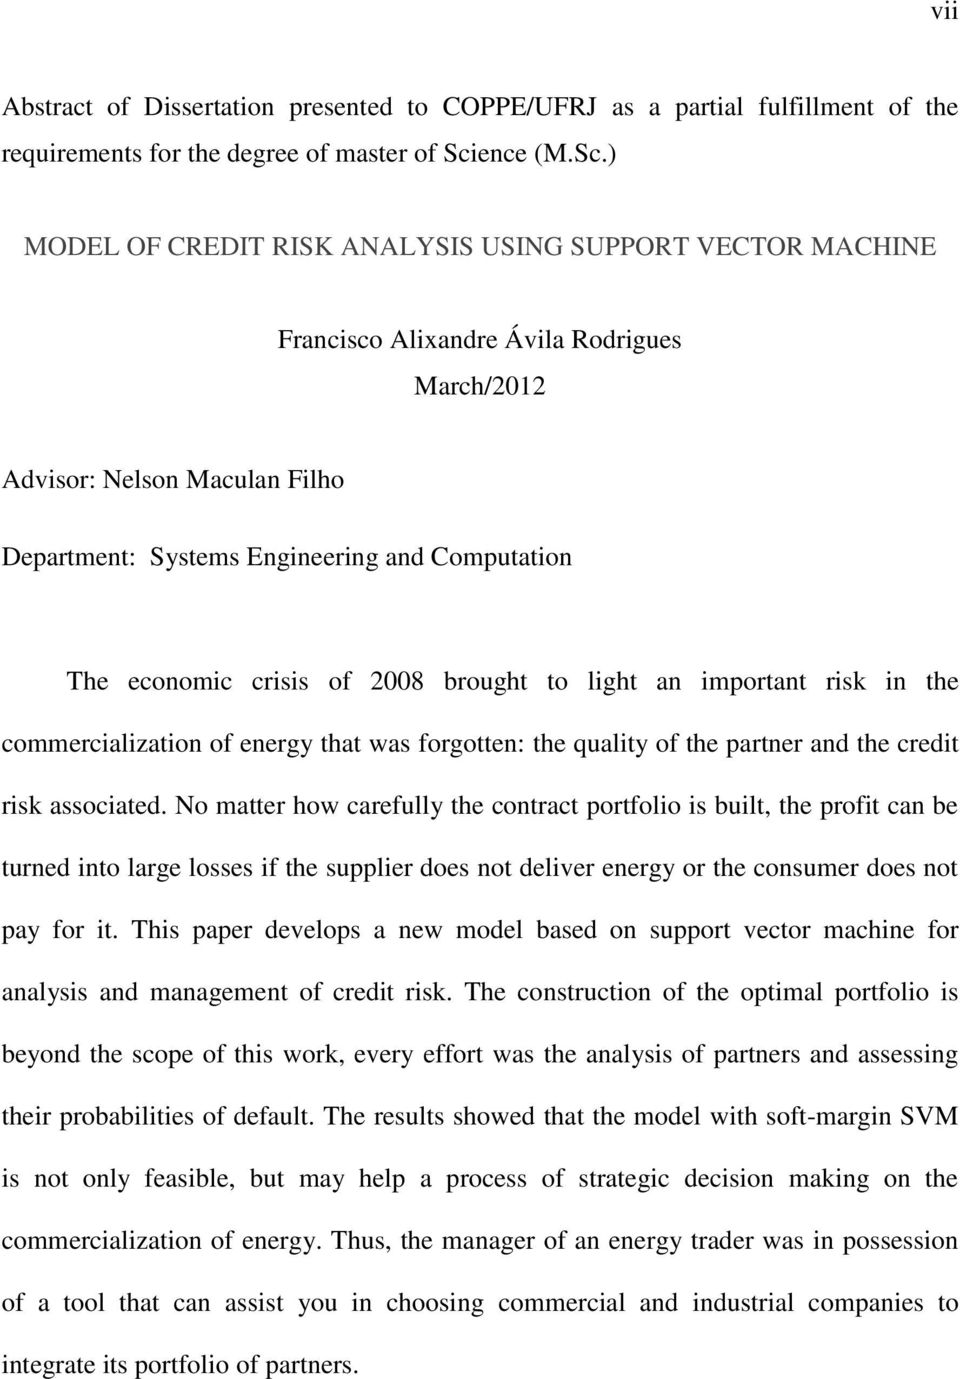 ) MODEL OF CREDIT RISK ANALYSIS USING SUPPORT VECTOR MACHINE Francisco Alixandre Ávila Rodrigues March/2012 Advisor: Nelson Maculan Filho Department: Systems Engineering and Computation The economic